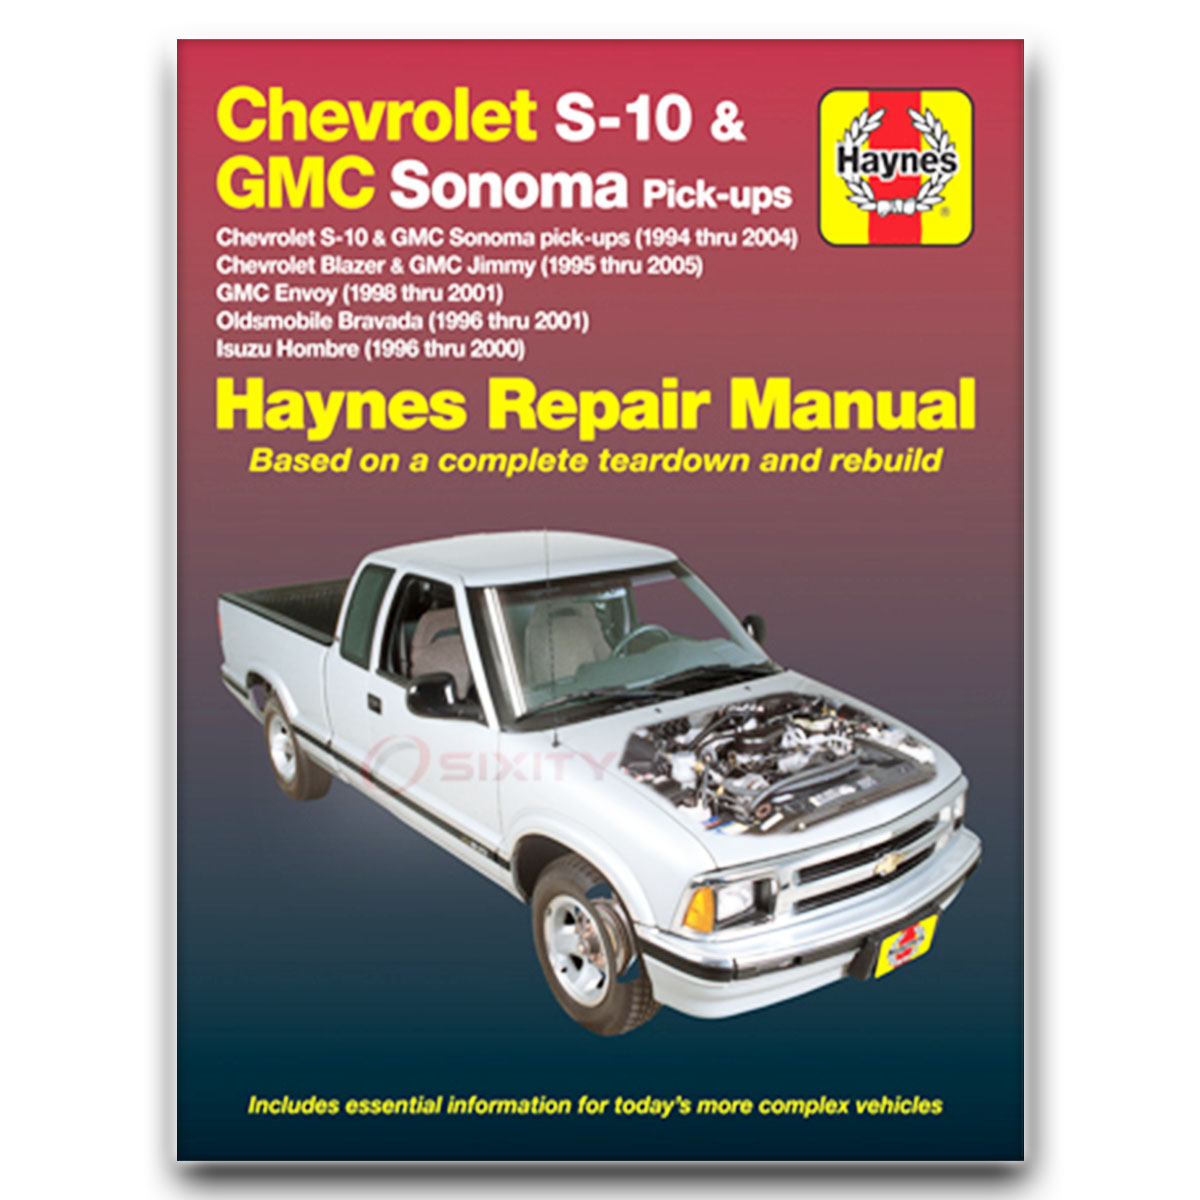 2003 gmc sonoma repair manual free owners manual u2022 rh wordworksbysea com Sony Vaio Laptop Manual Guide Sony Vaio Laptop Repair Manual